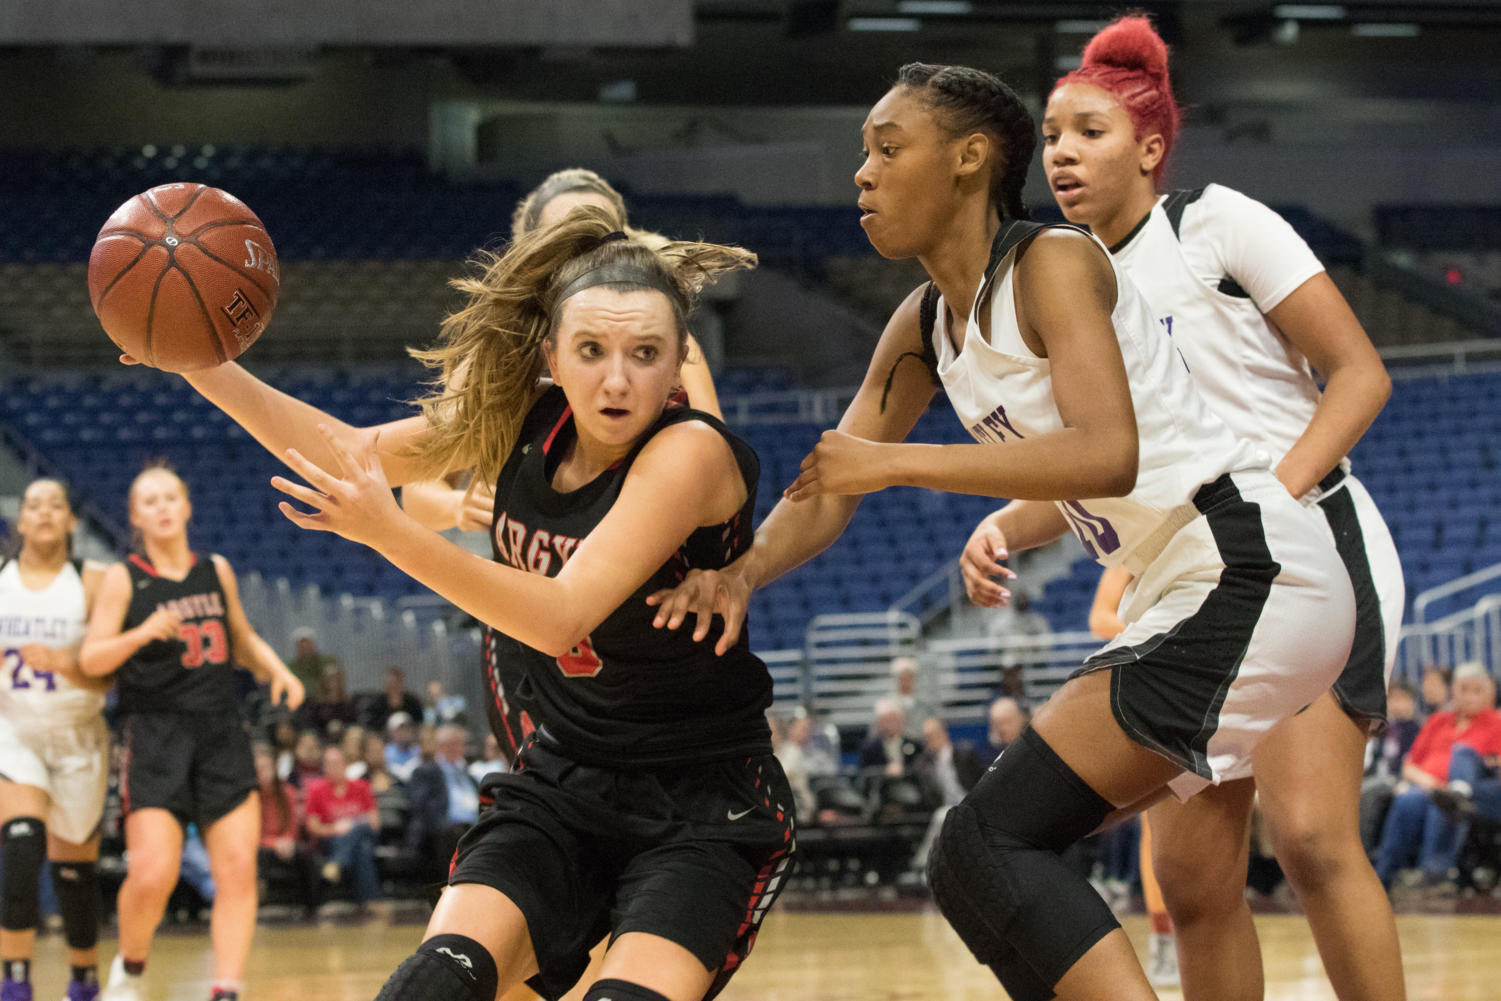 The Lady Eagles Rhyle McKinney drives to the goal in the state semi final game against  Houston Wheatley in the UIL 4A State Semi-Final game, finishing the game with a winning score of 62-46. The team plays in the championship game against Veteran's Memorial tomorrow in the Alamodome at 7pm. (Campbell Wilmot/ The Talon News)